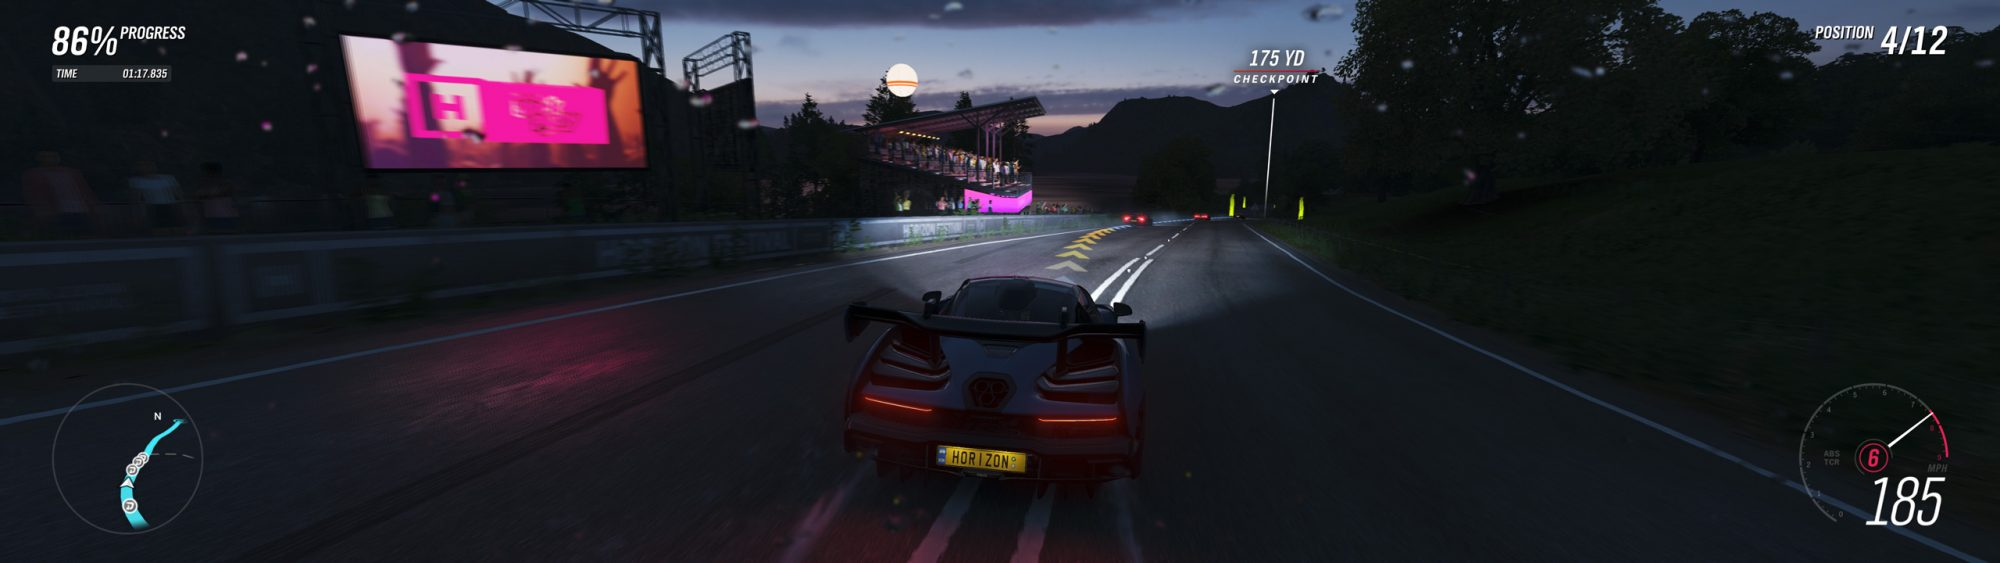 Screenshot of Forza Horizon 4 running on PC in Ultra settings (resized and resampled down for web)